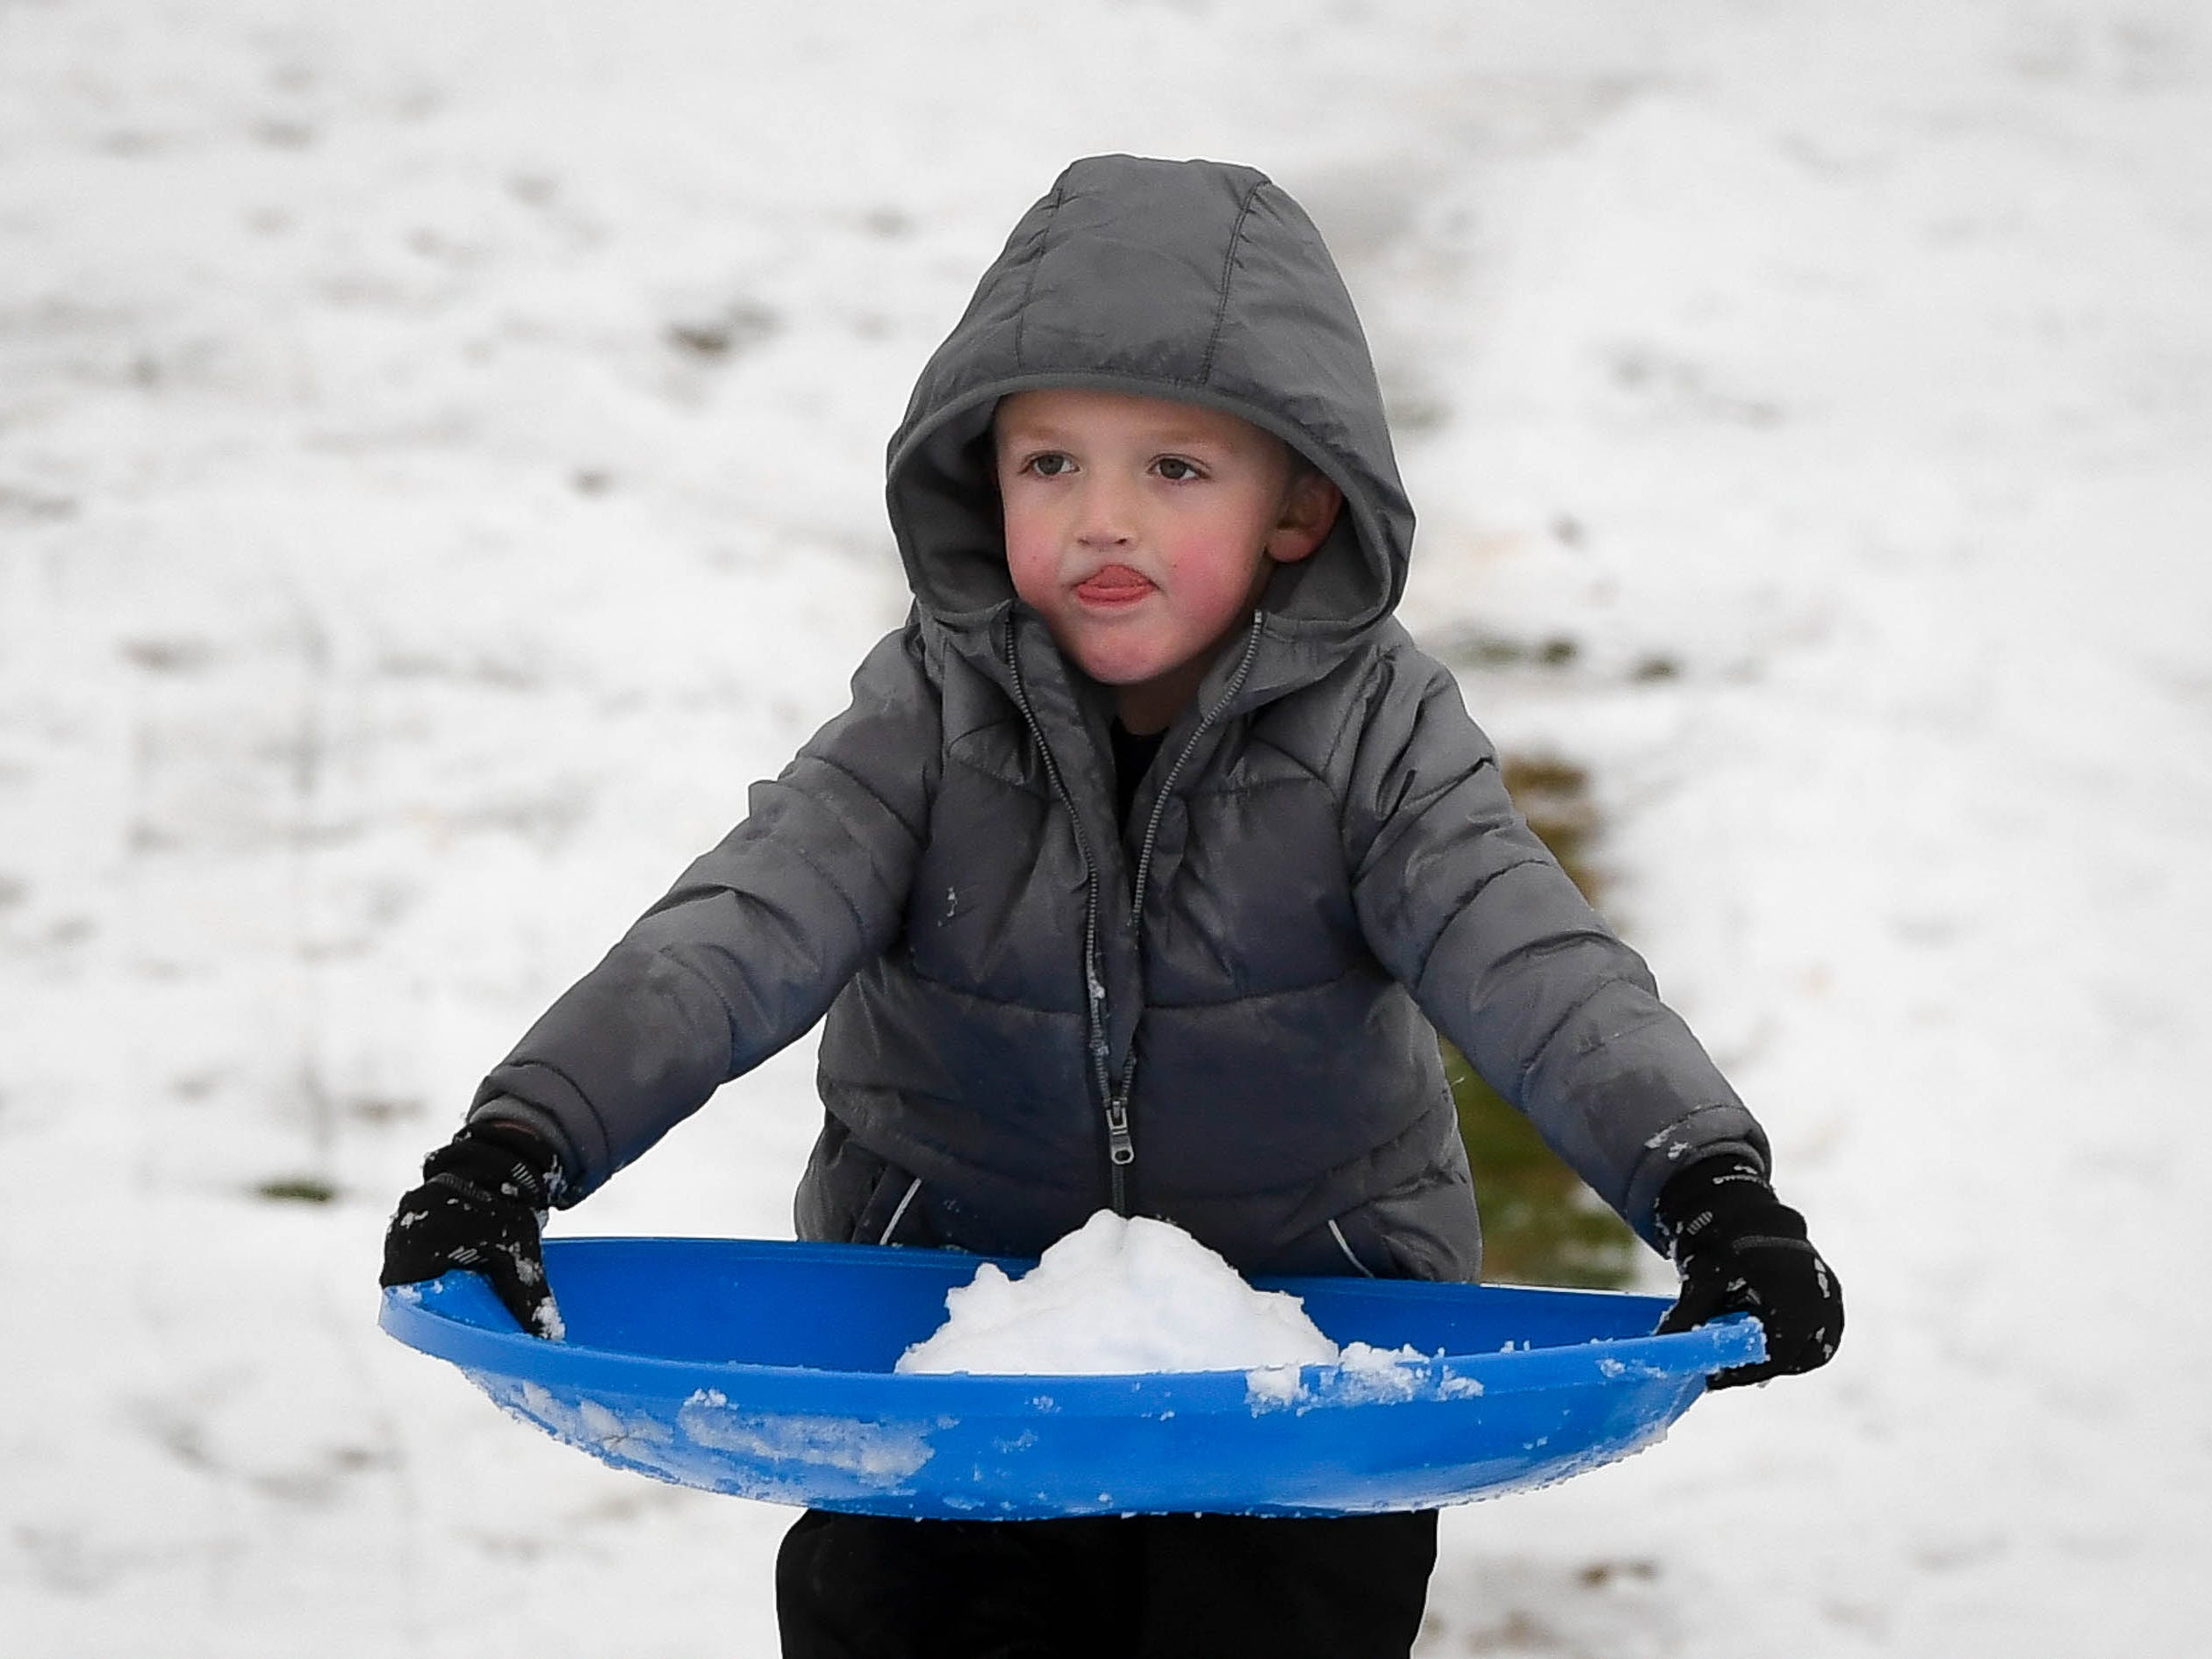 Being very careful, Camden Barkley carries a snowball to the top of the hill so he can throw it at his dad Aaron Barkley in a snowball fight at Henderson Municipal Golf Course Saturday, January 12 2019.